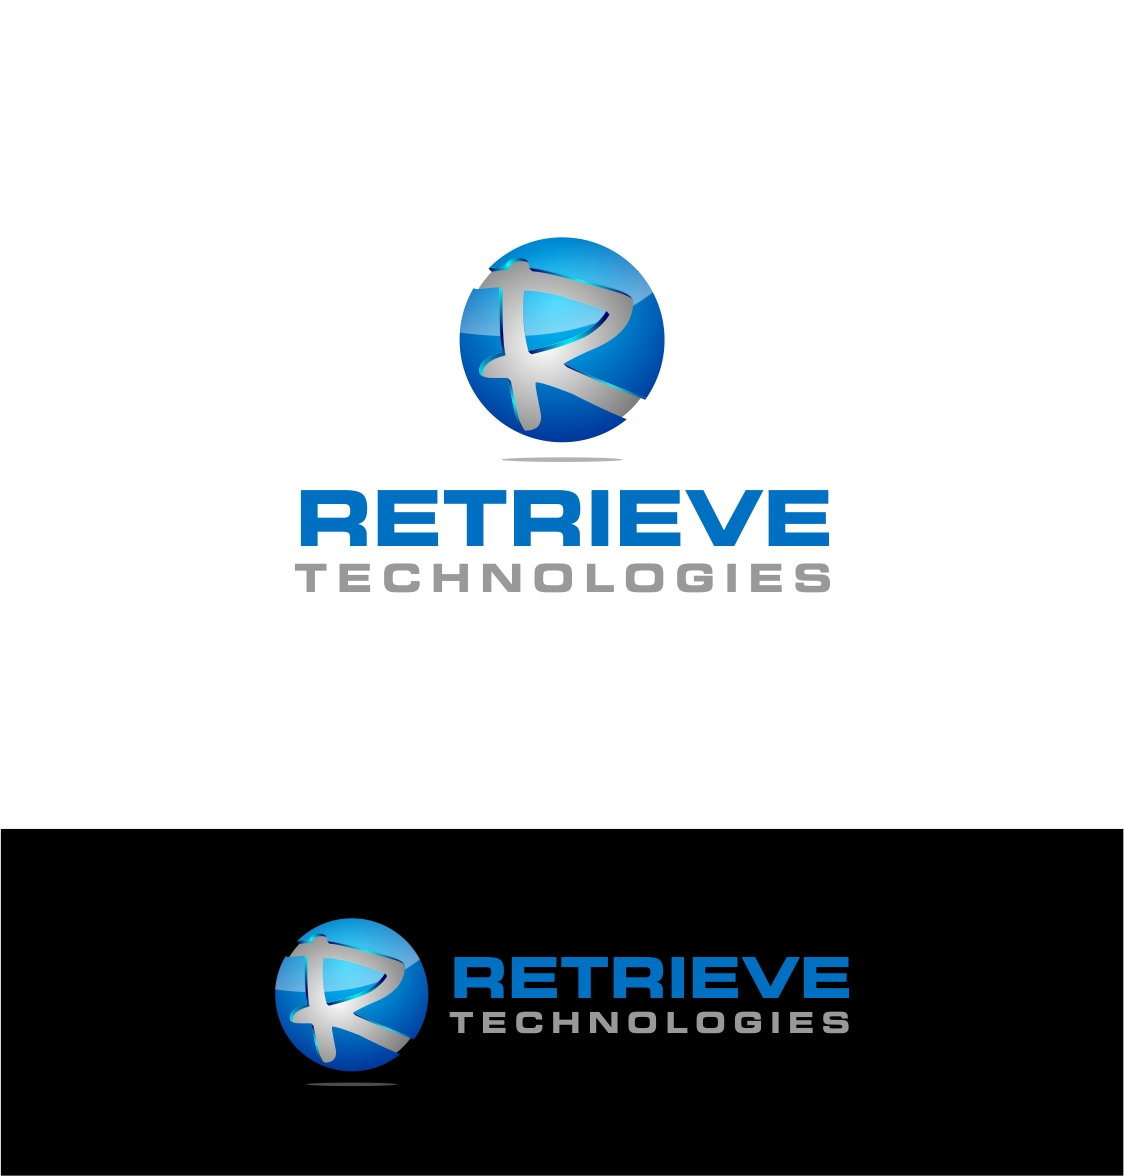 Logo Design by haidu - Entry No. 33 in the Logo Design Contest Artistic Logo Design for Retrieve Technologies.